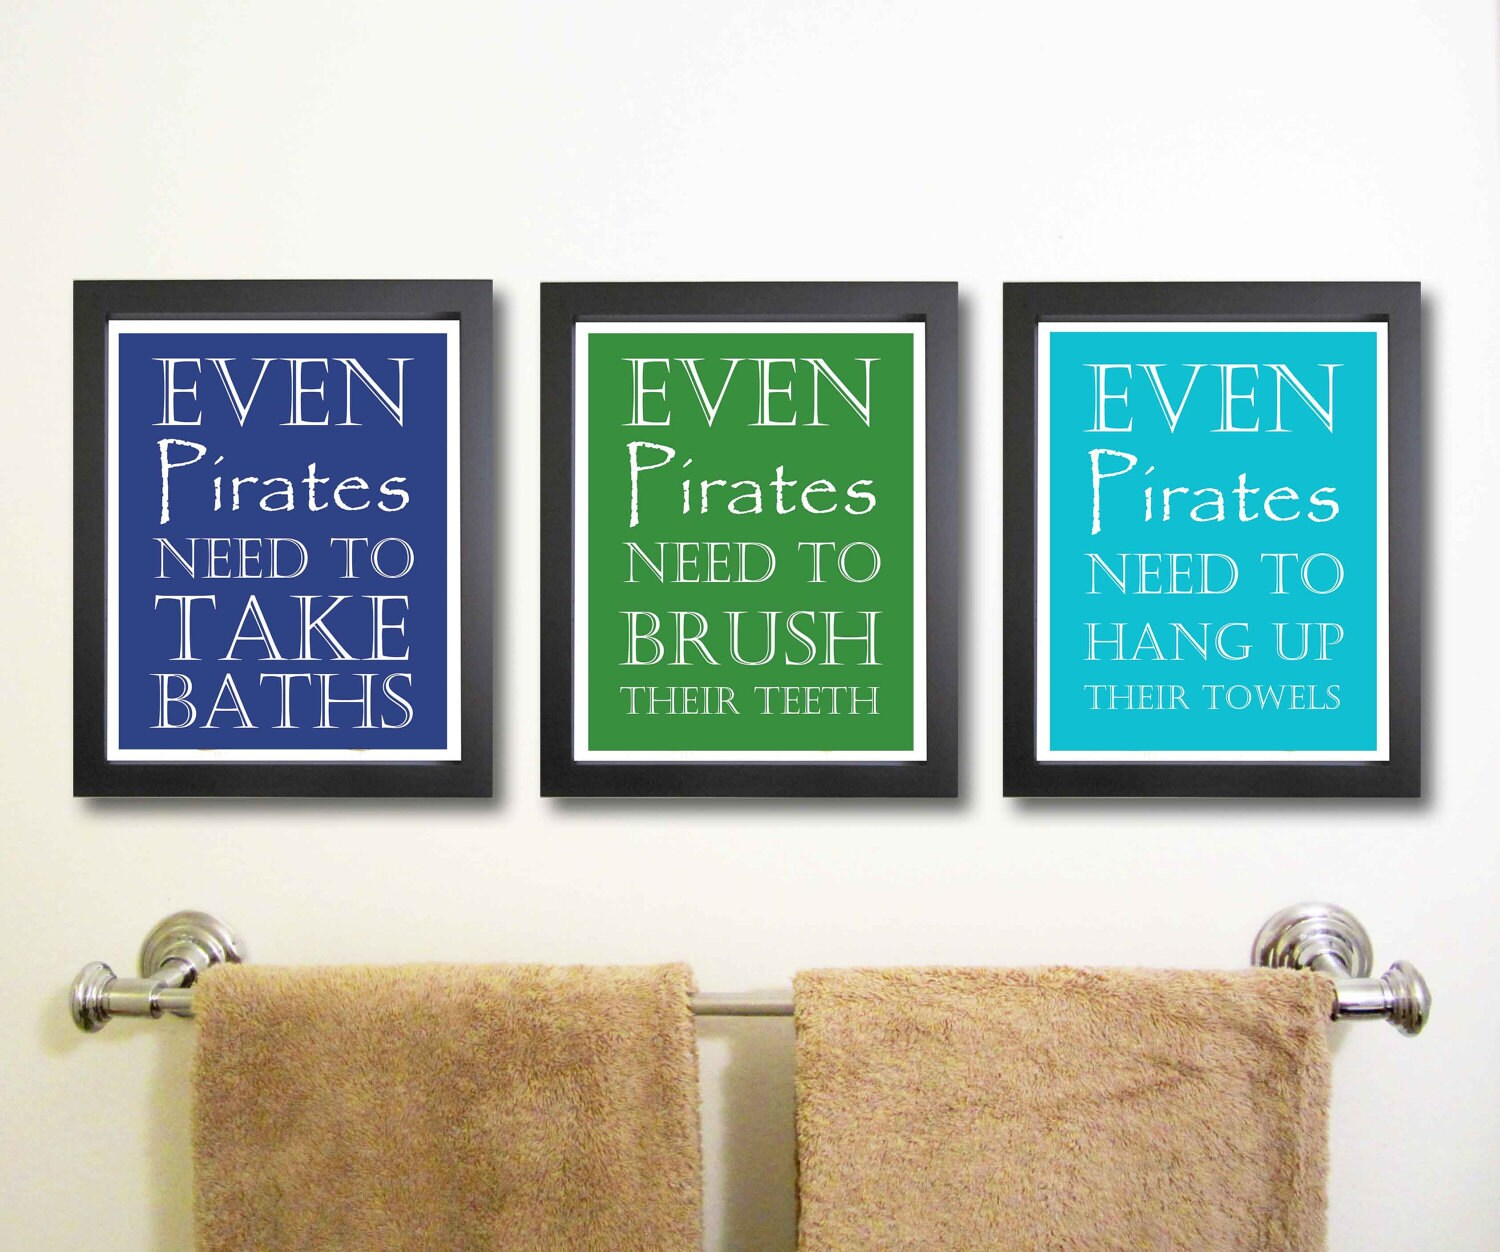 Pirate Bedroom Accessories 17 Best Images About Pirate Bathroom On Pinterest Wash Brush